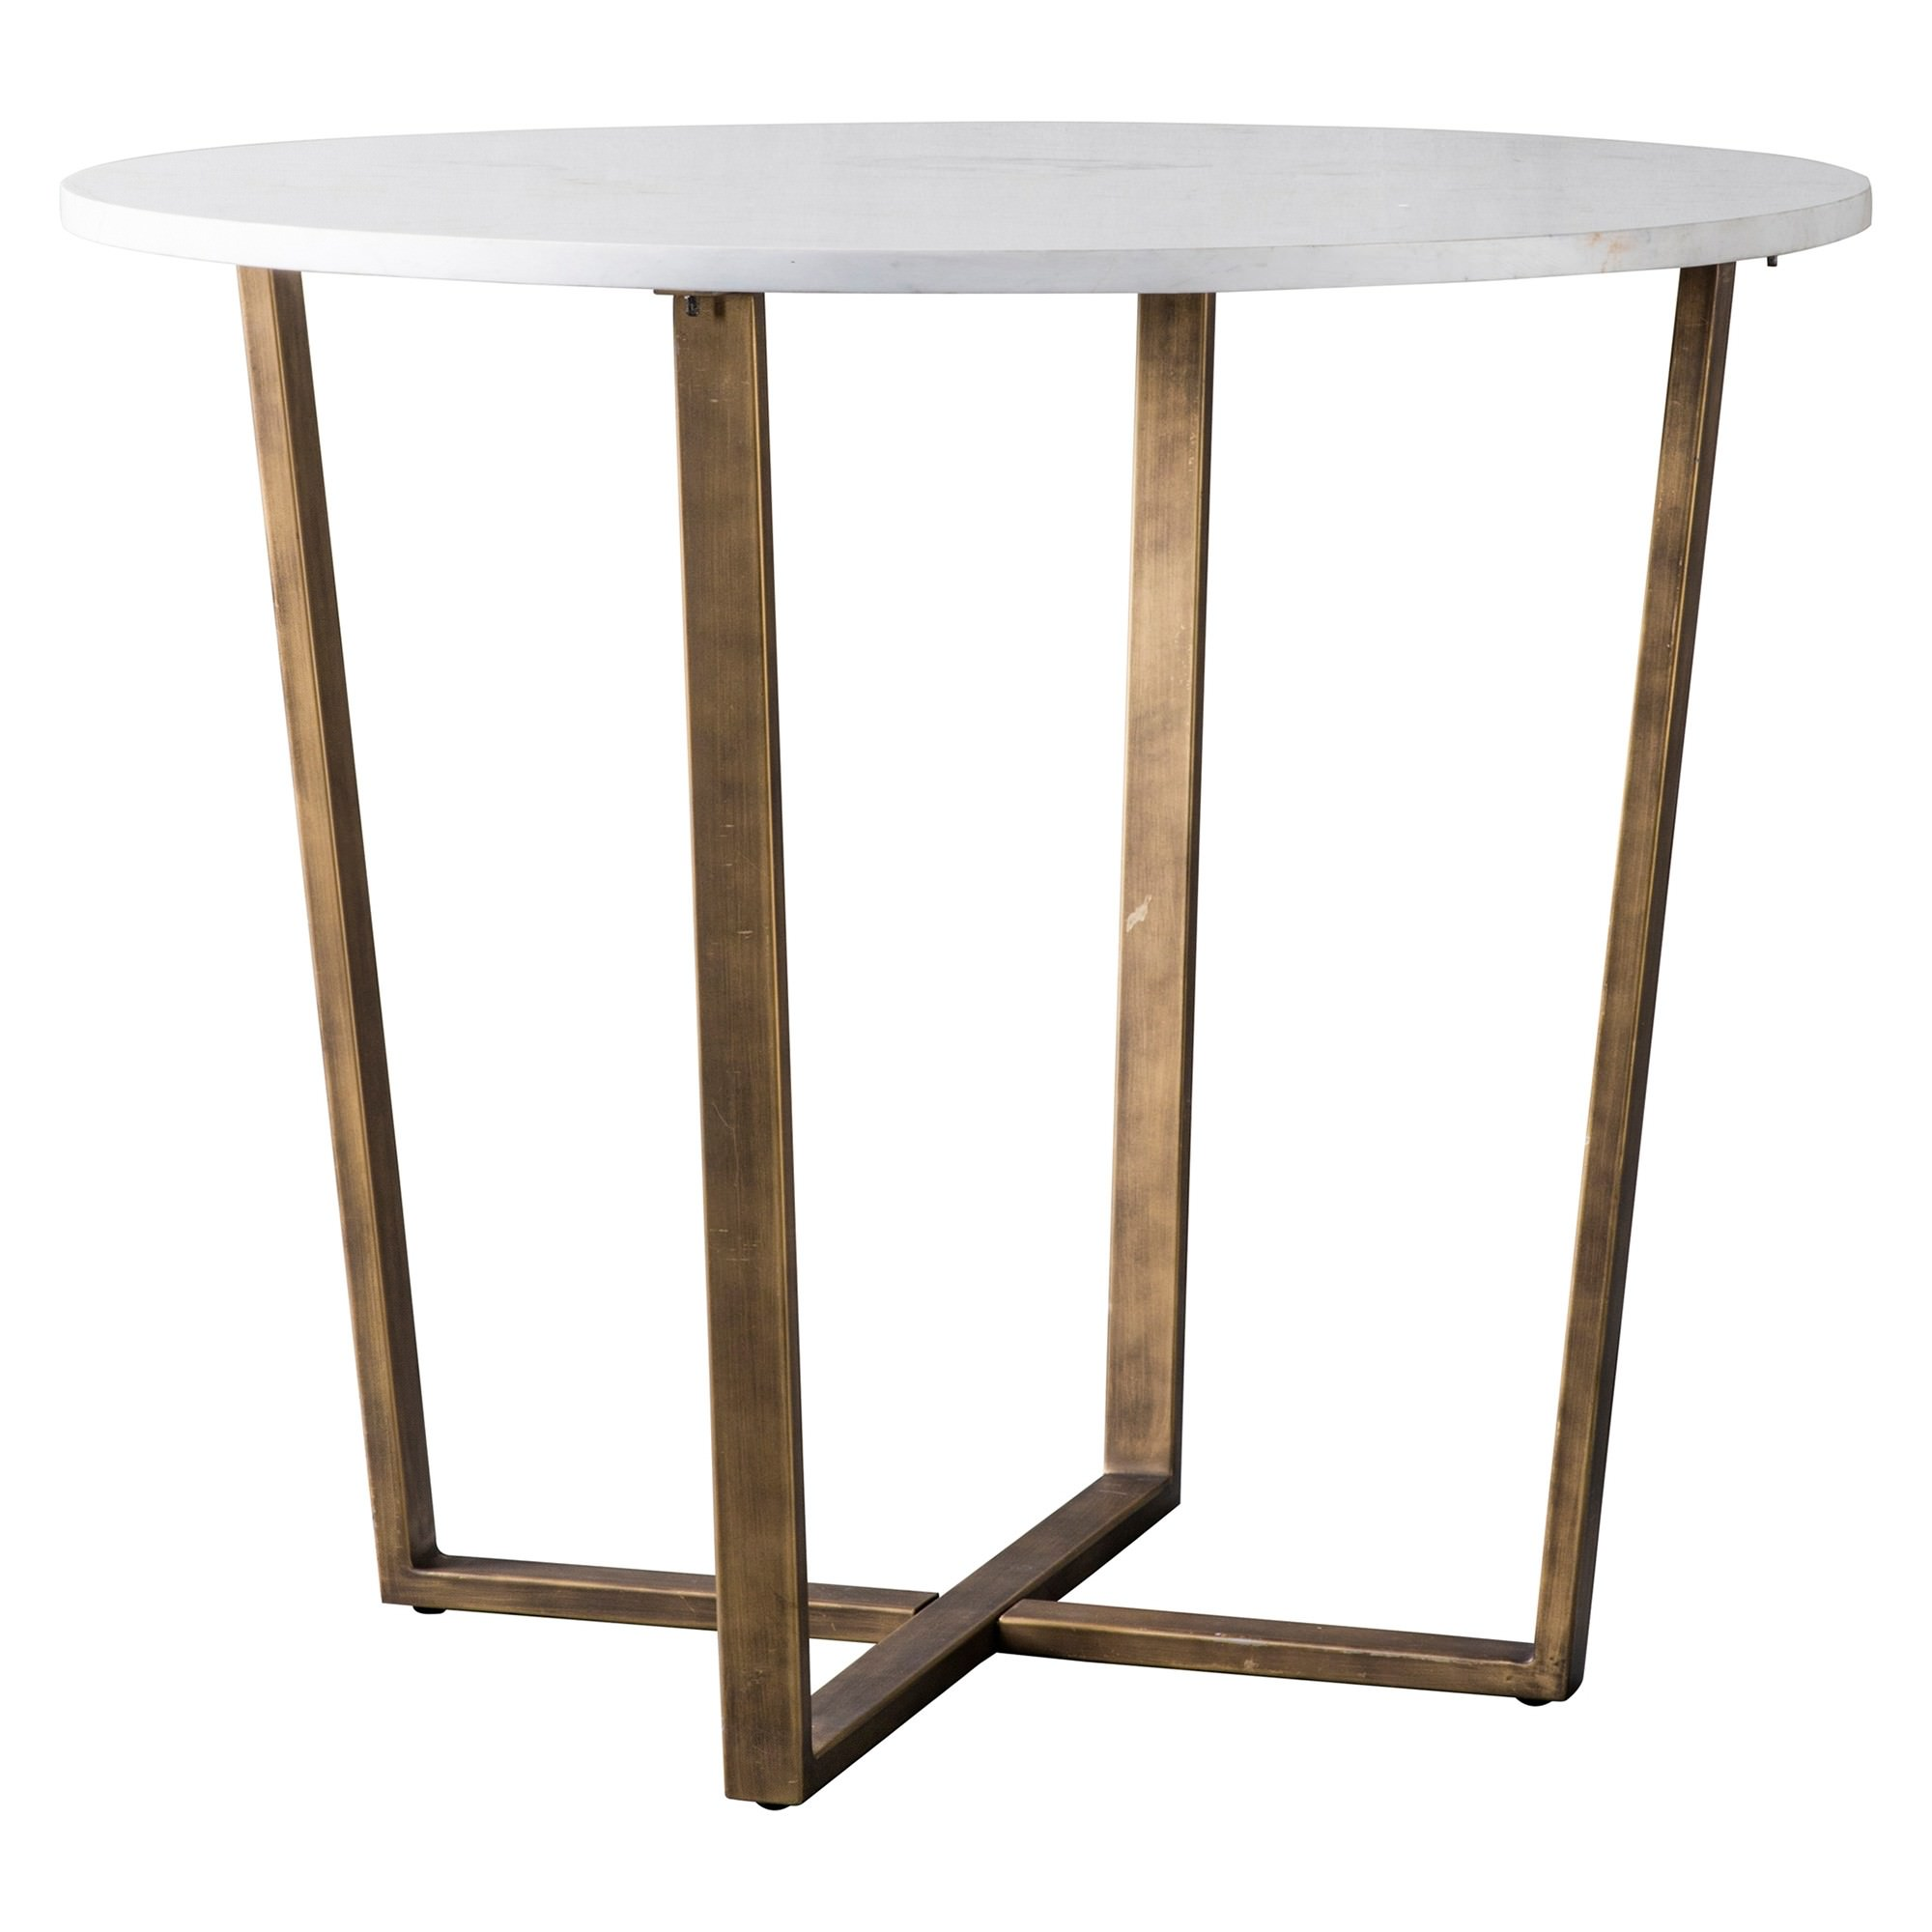 Earl Marble Top Round Dining Table, 90cm, White / Brass